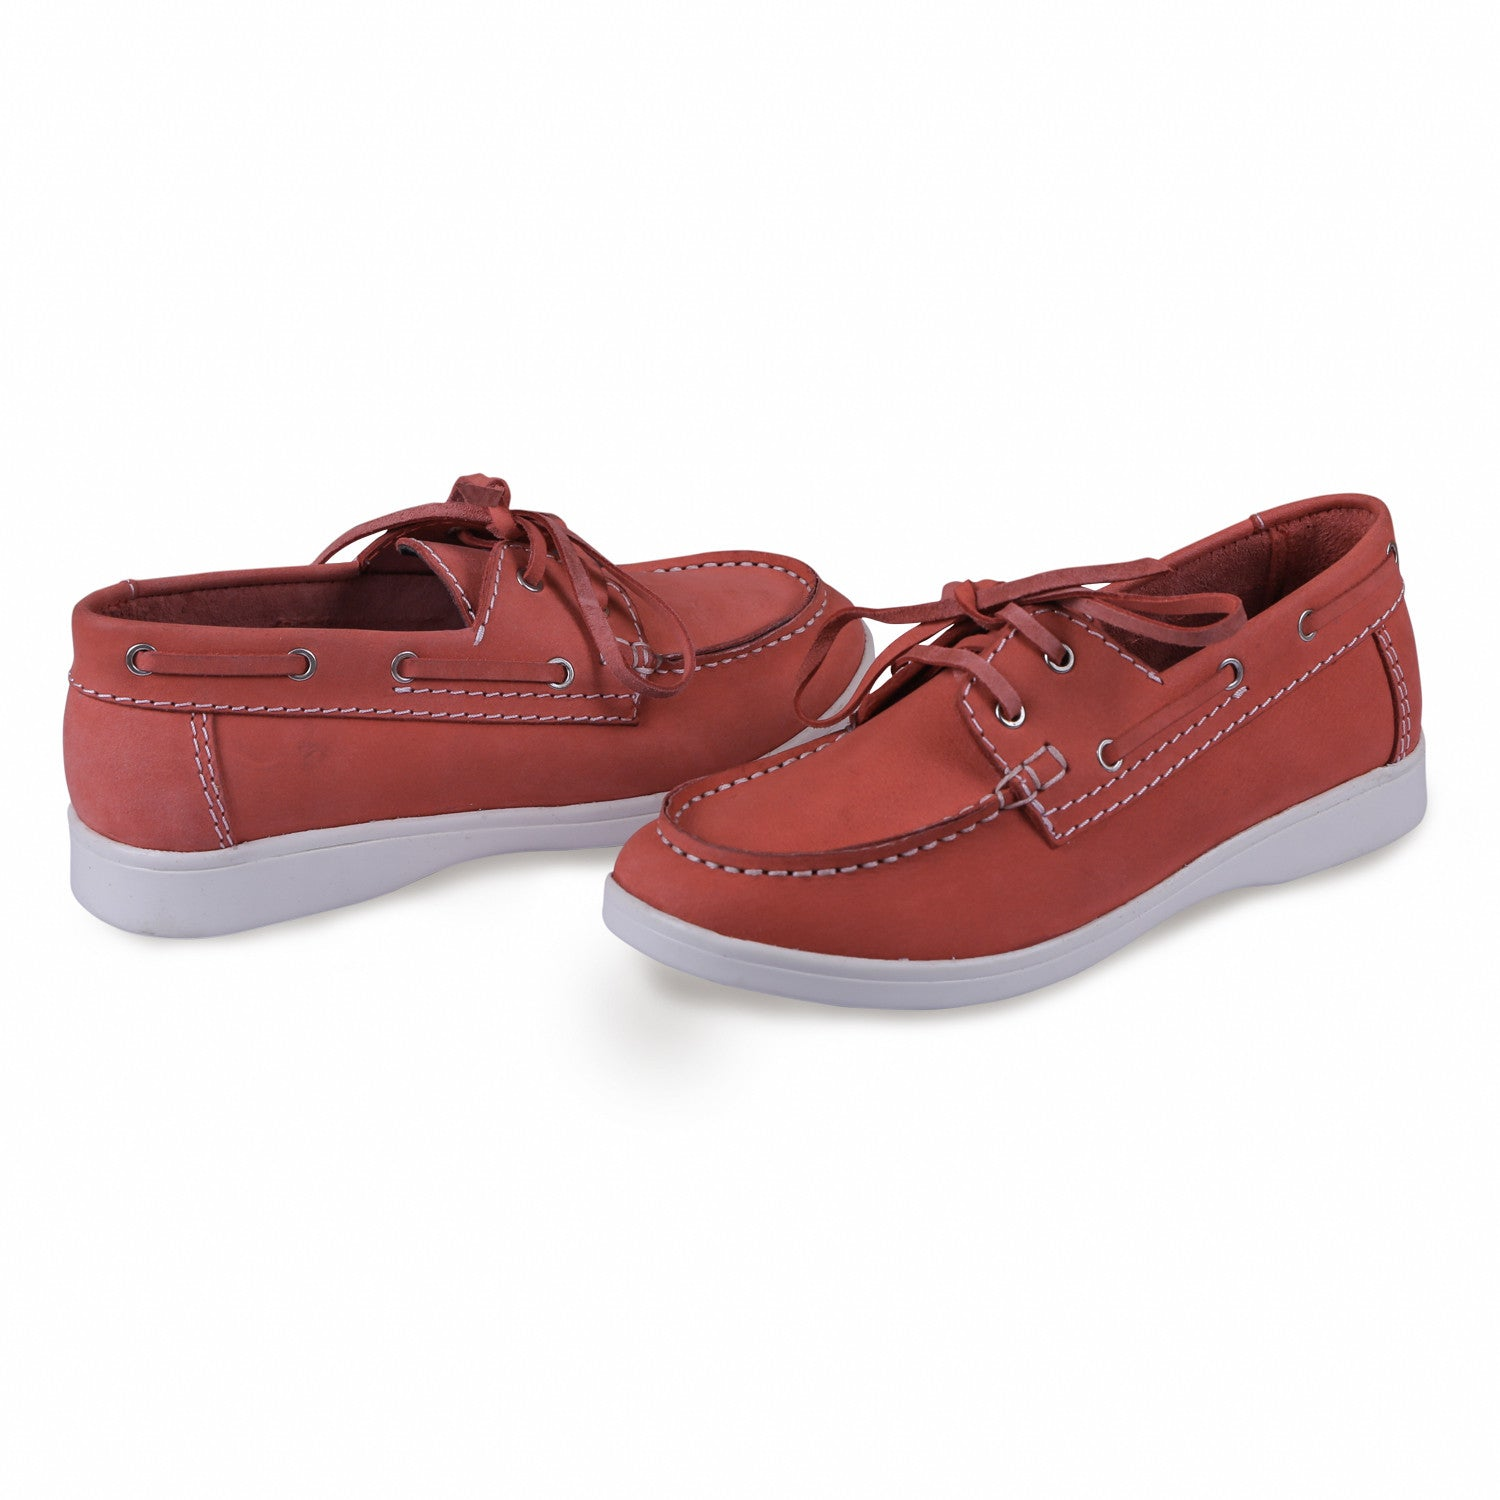 Tan leather 'Becon' boat shoes discount 100% guaranteed 2015 sale online cheap sale for nice gHpeFtV